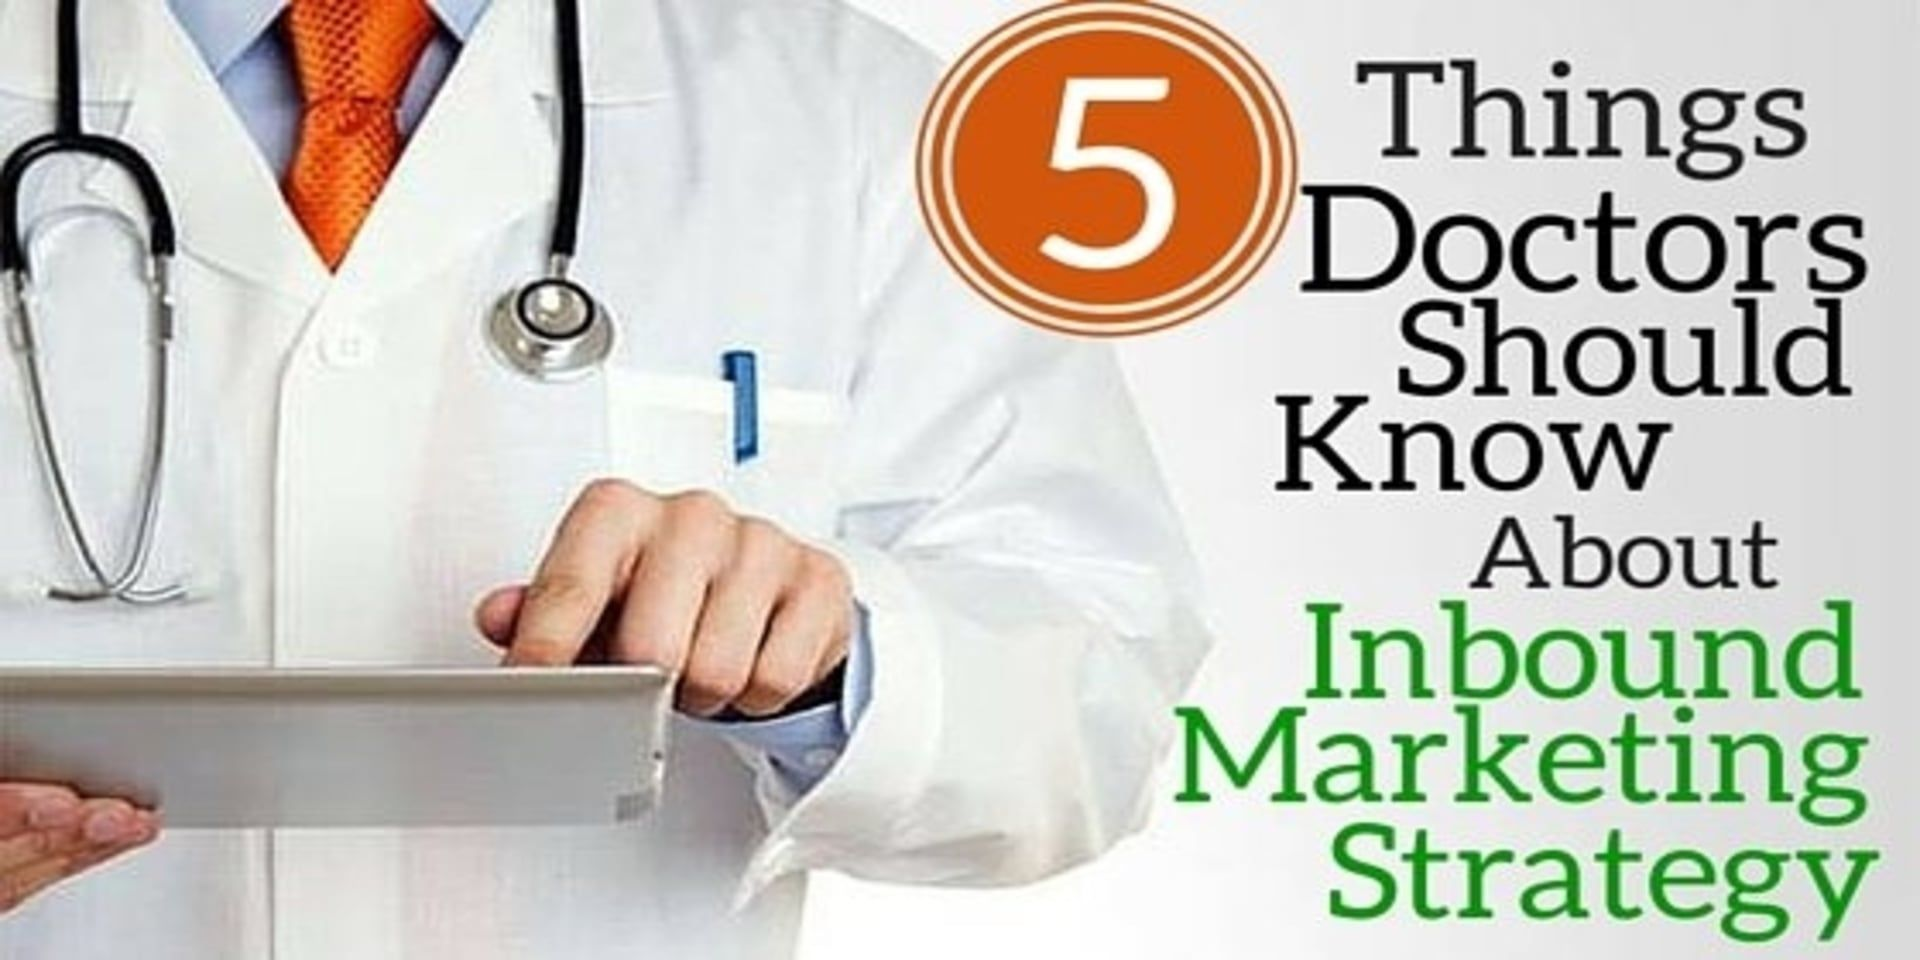 How to market yourself as a doctor